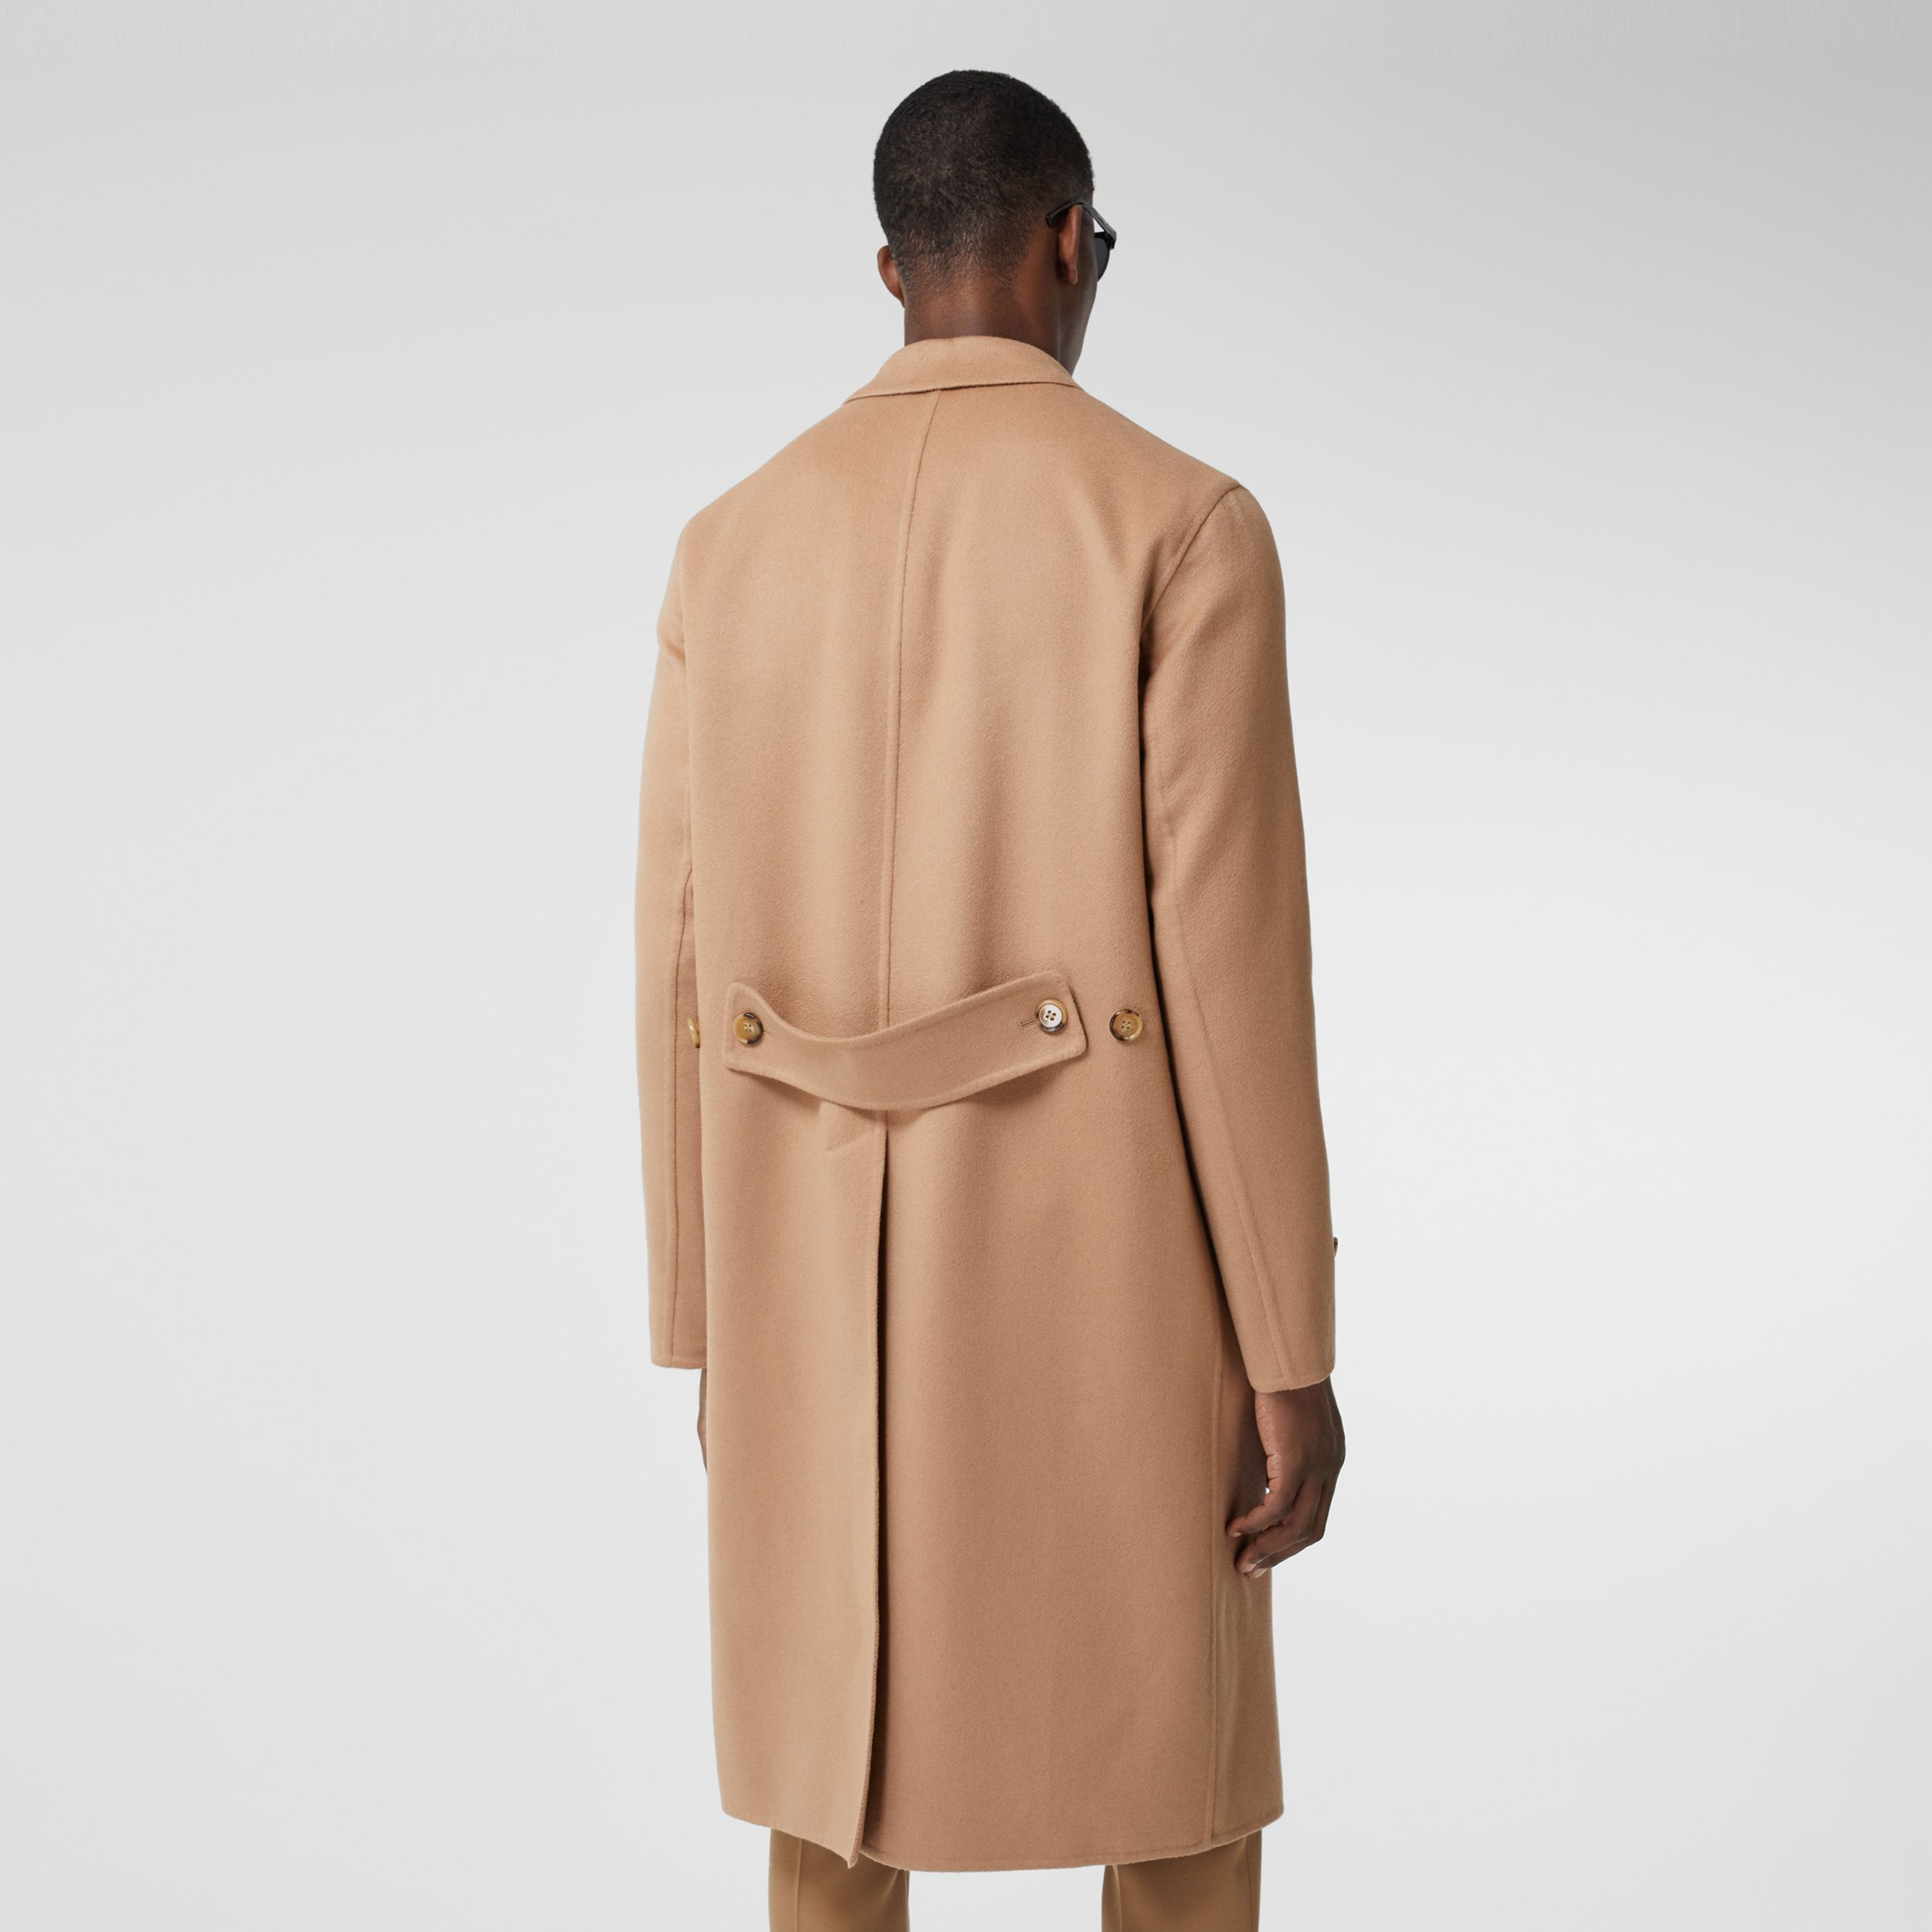 Double-faced Cashmere Lab Coat in Camel - Men | Burberry Hong Kong S.A.R. - 3